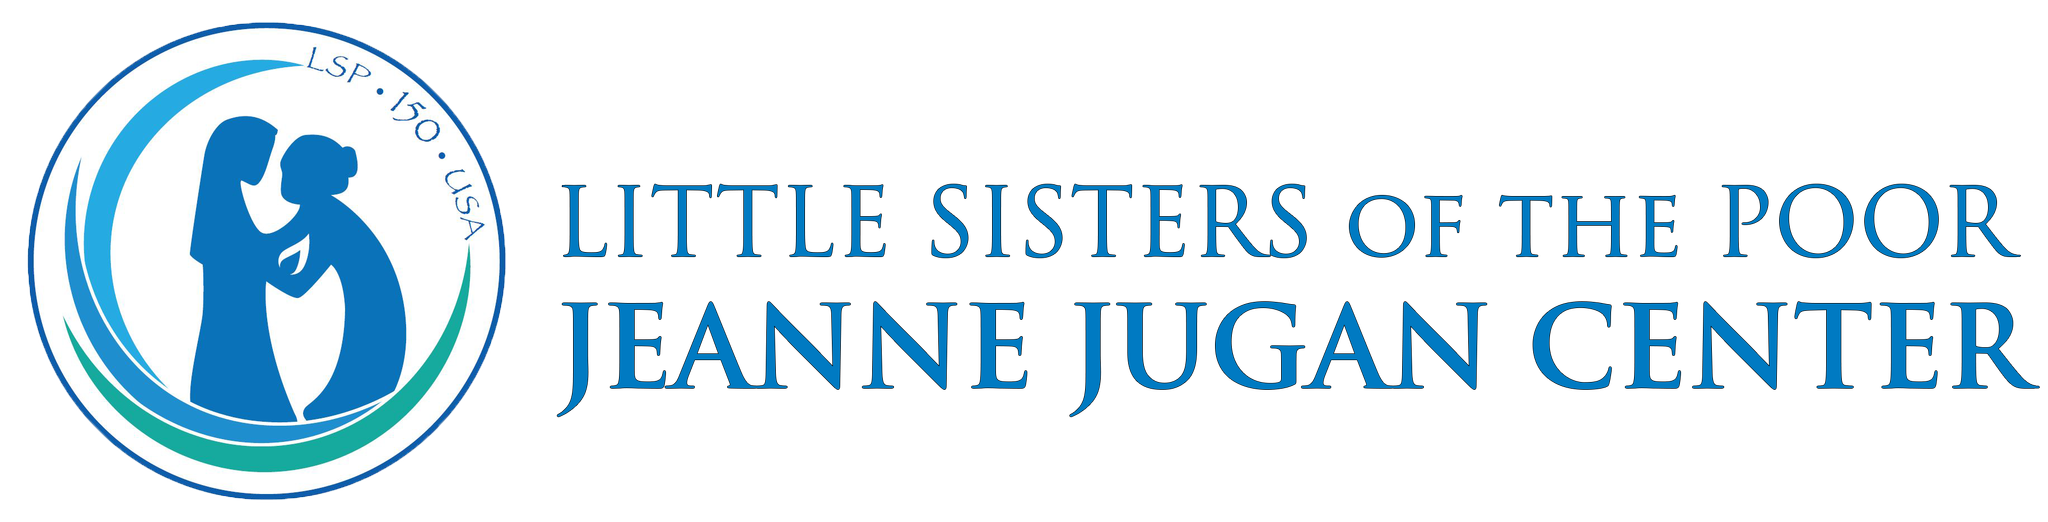 Little Sisters of the Poor Kansas City